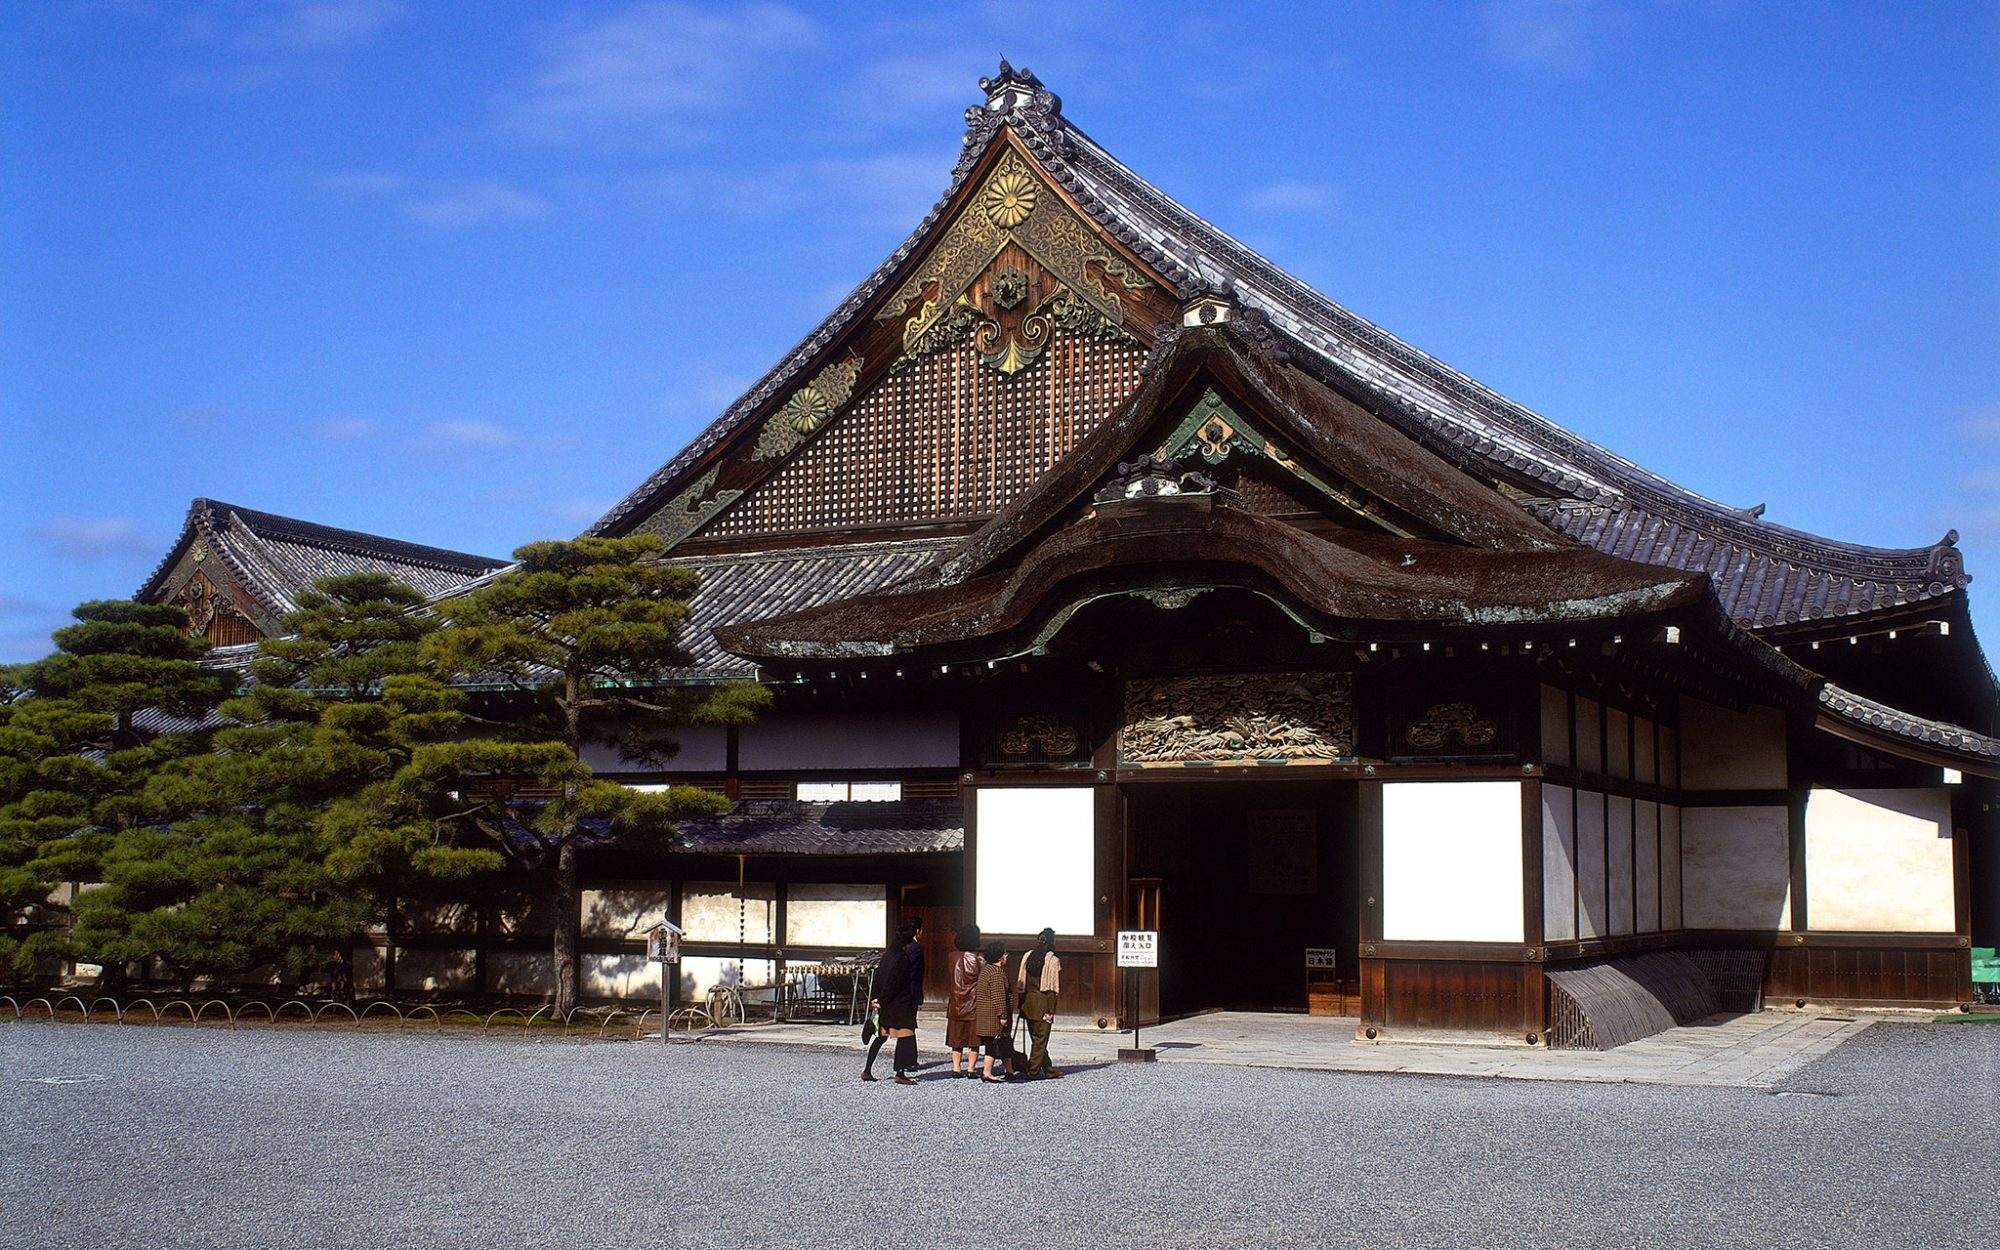 World's Most-Visited Castles: No. 16 Nijo Castle, Kyoto, Japan